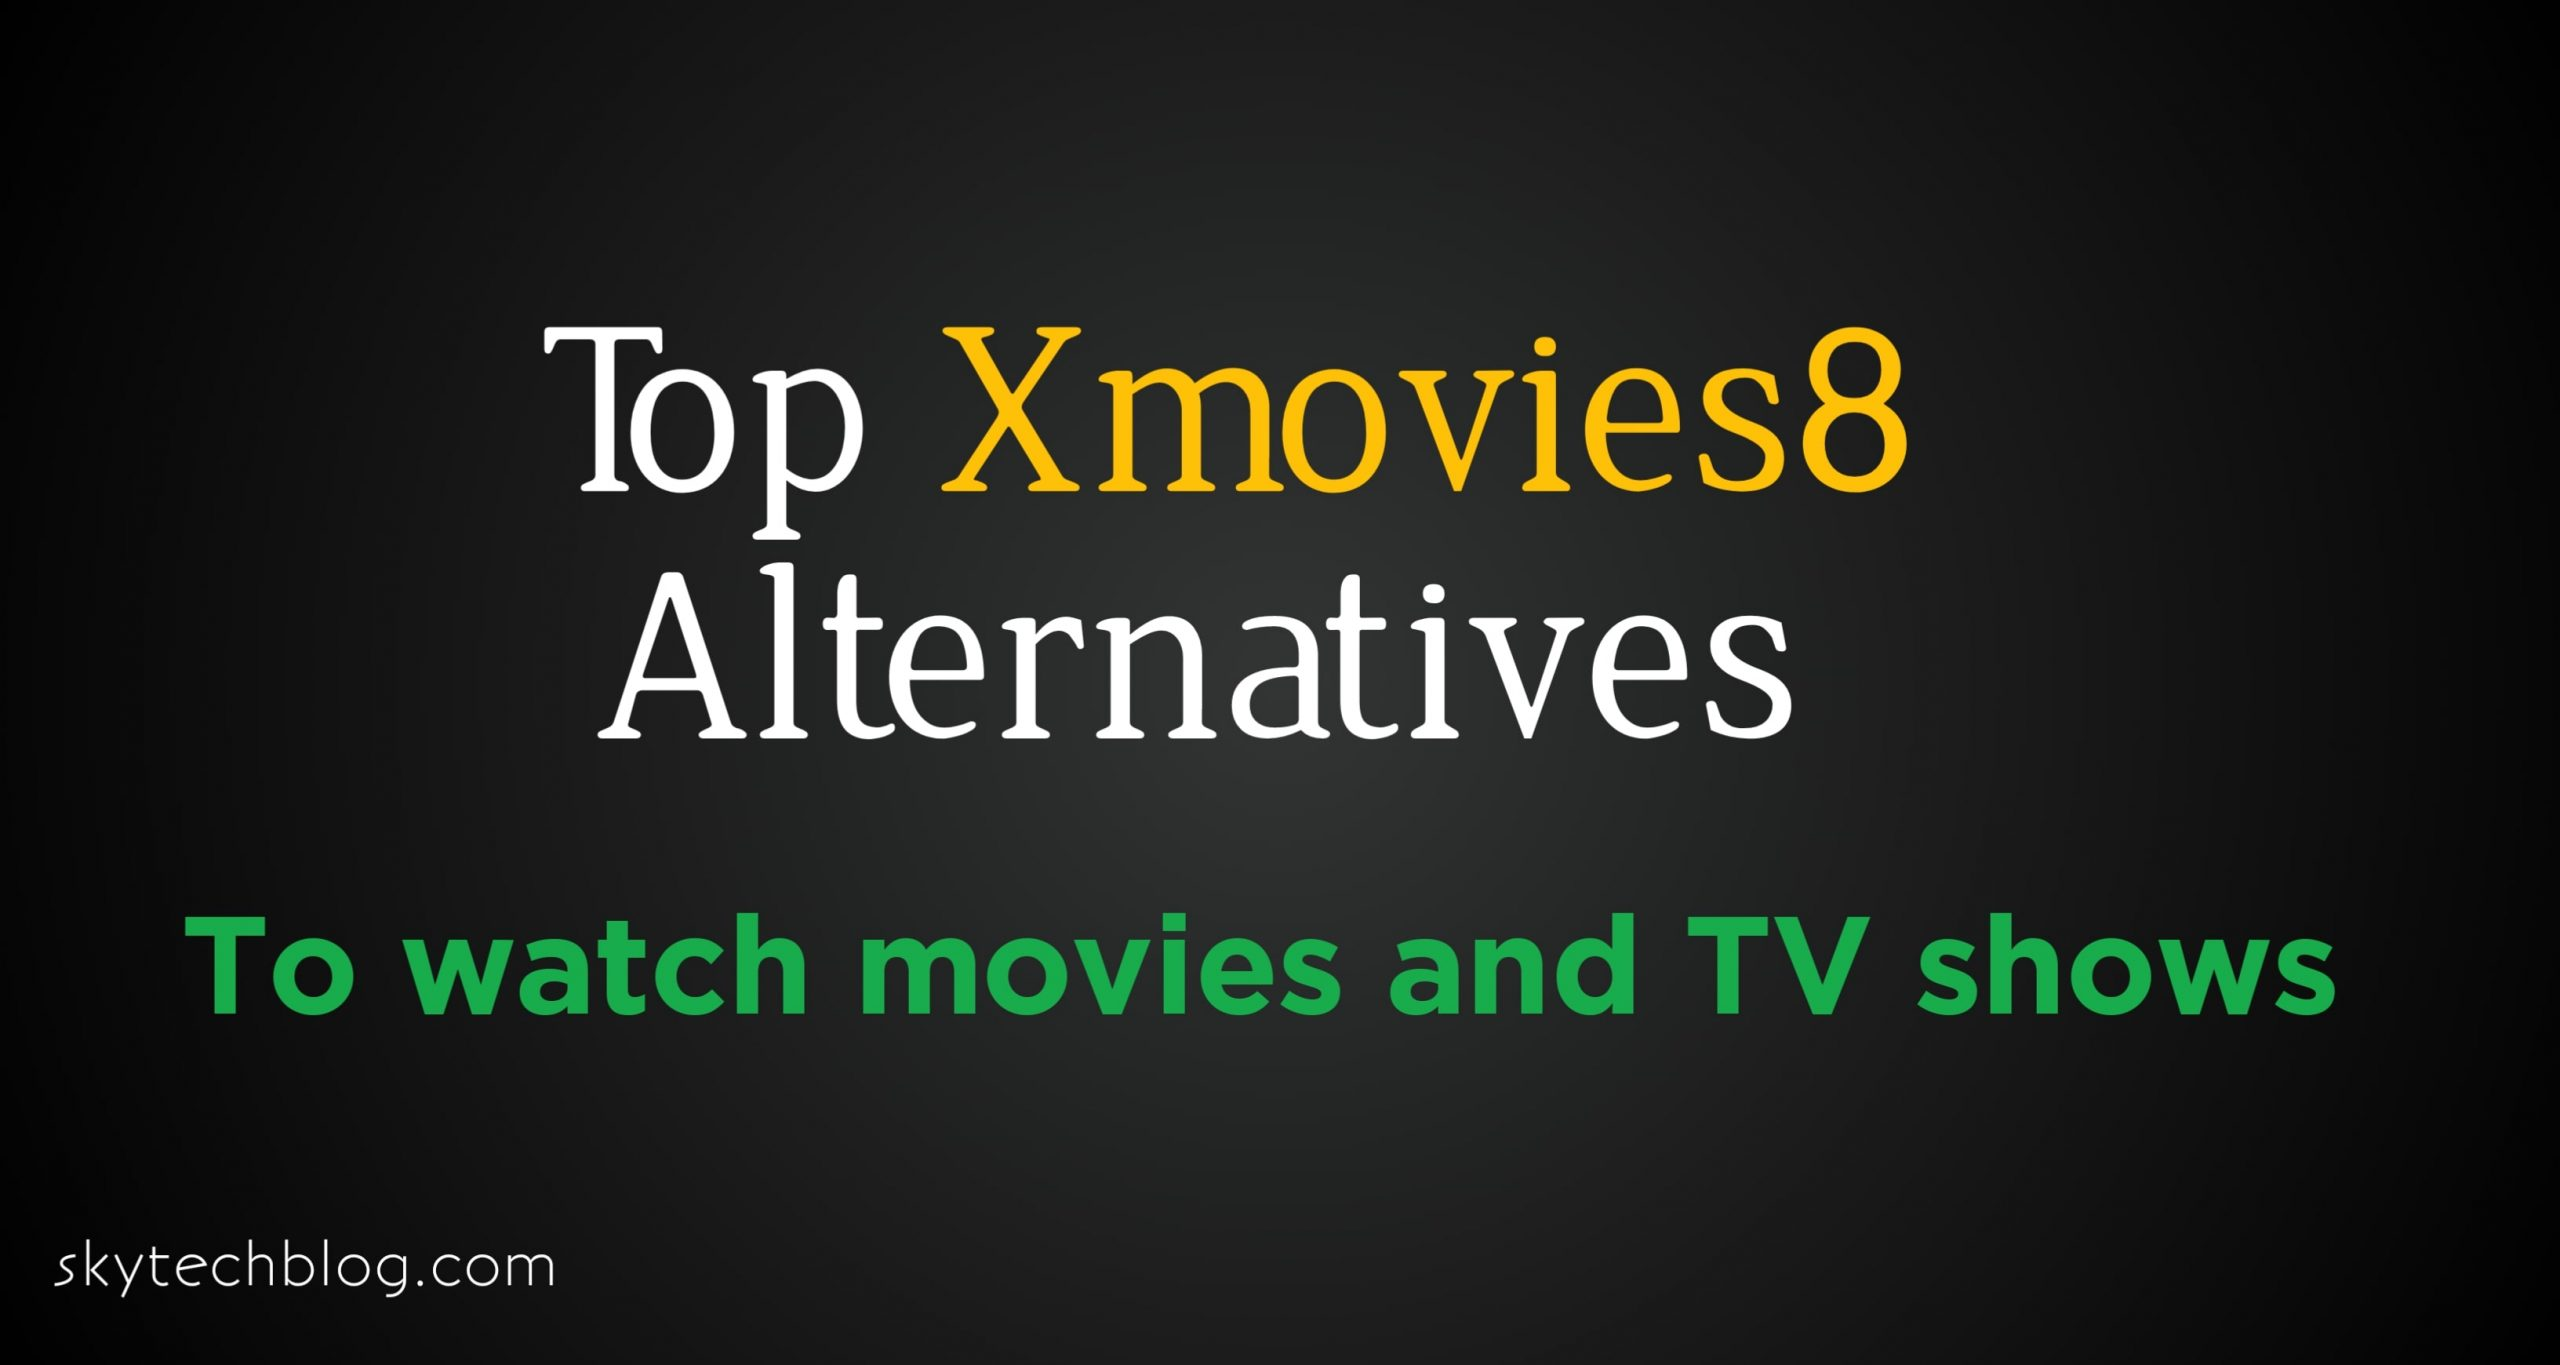 Top Xmovies8 Alternatives